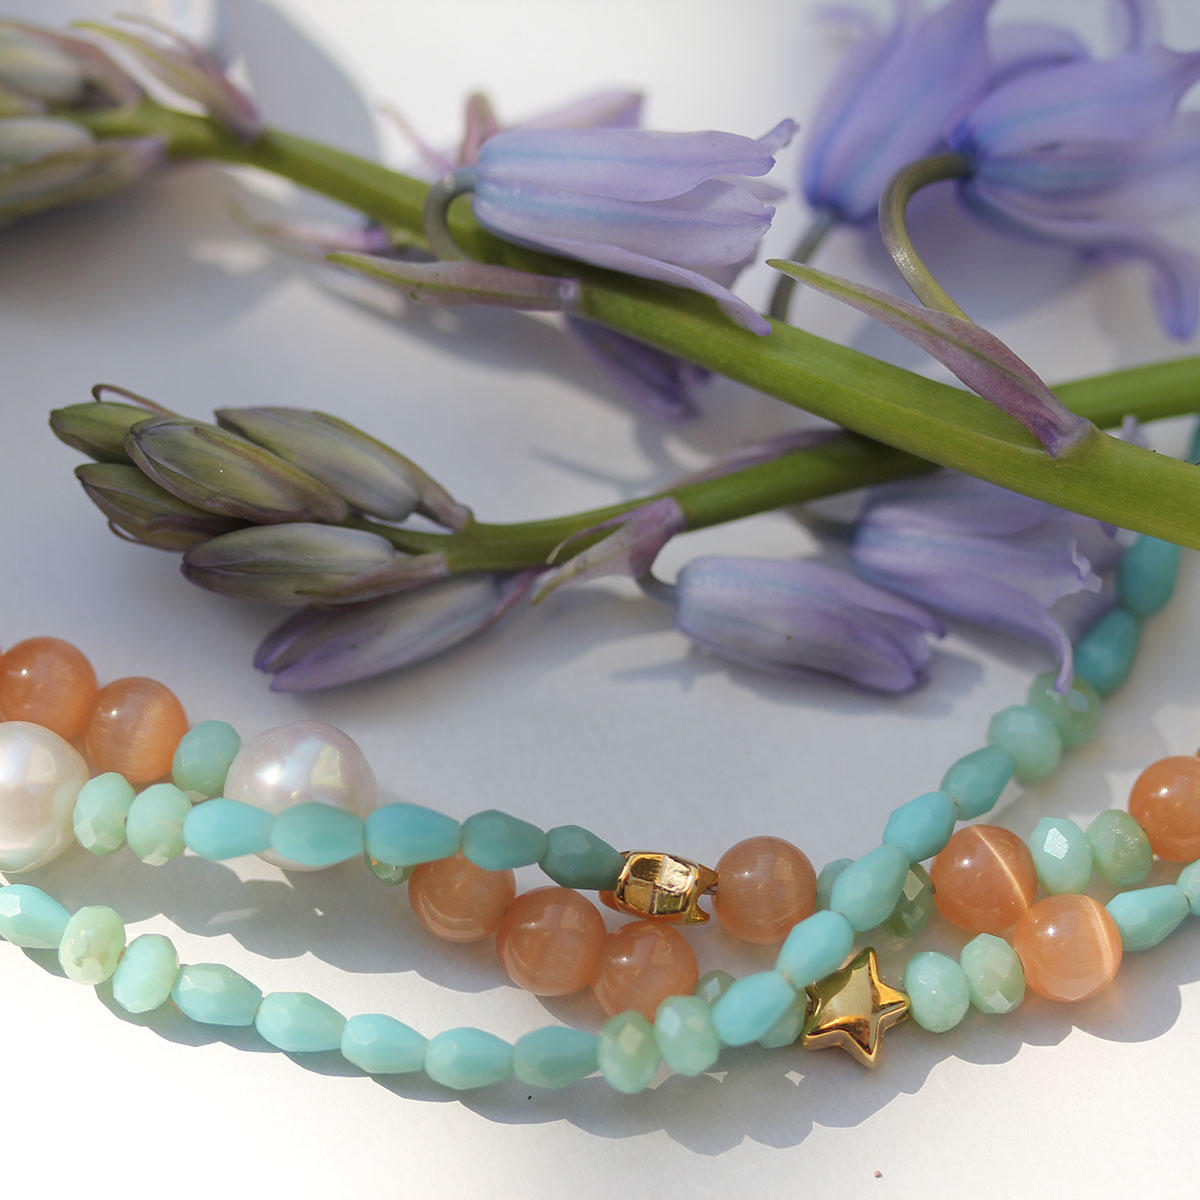 New Summer Coloured Beads for Jewellery Making